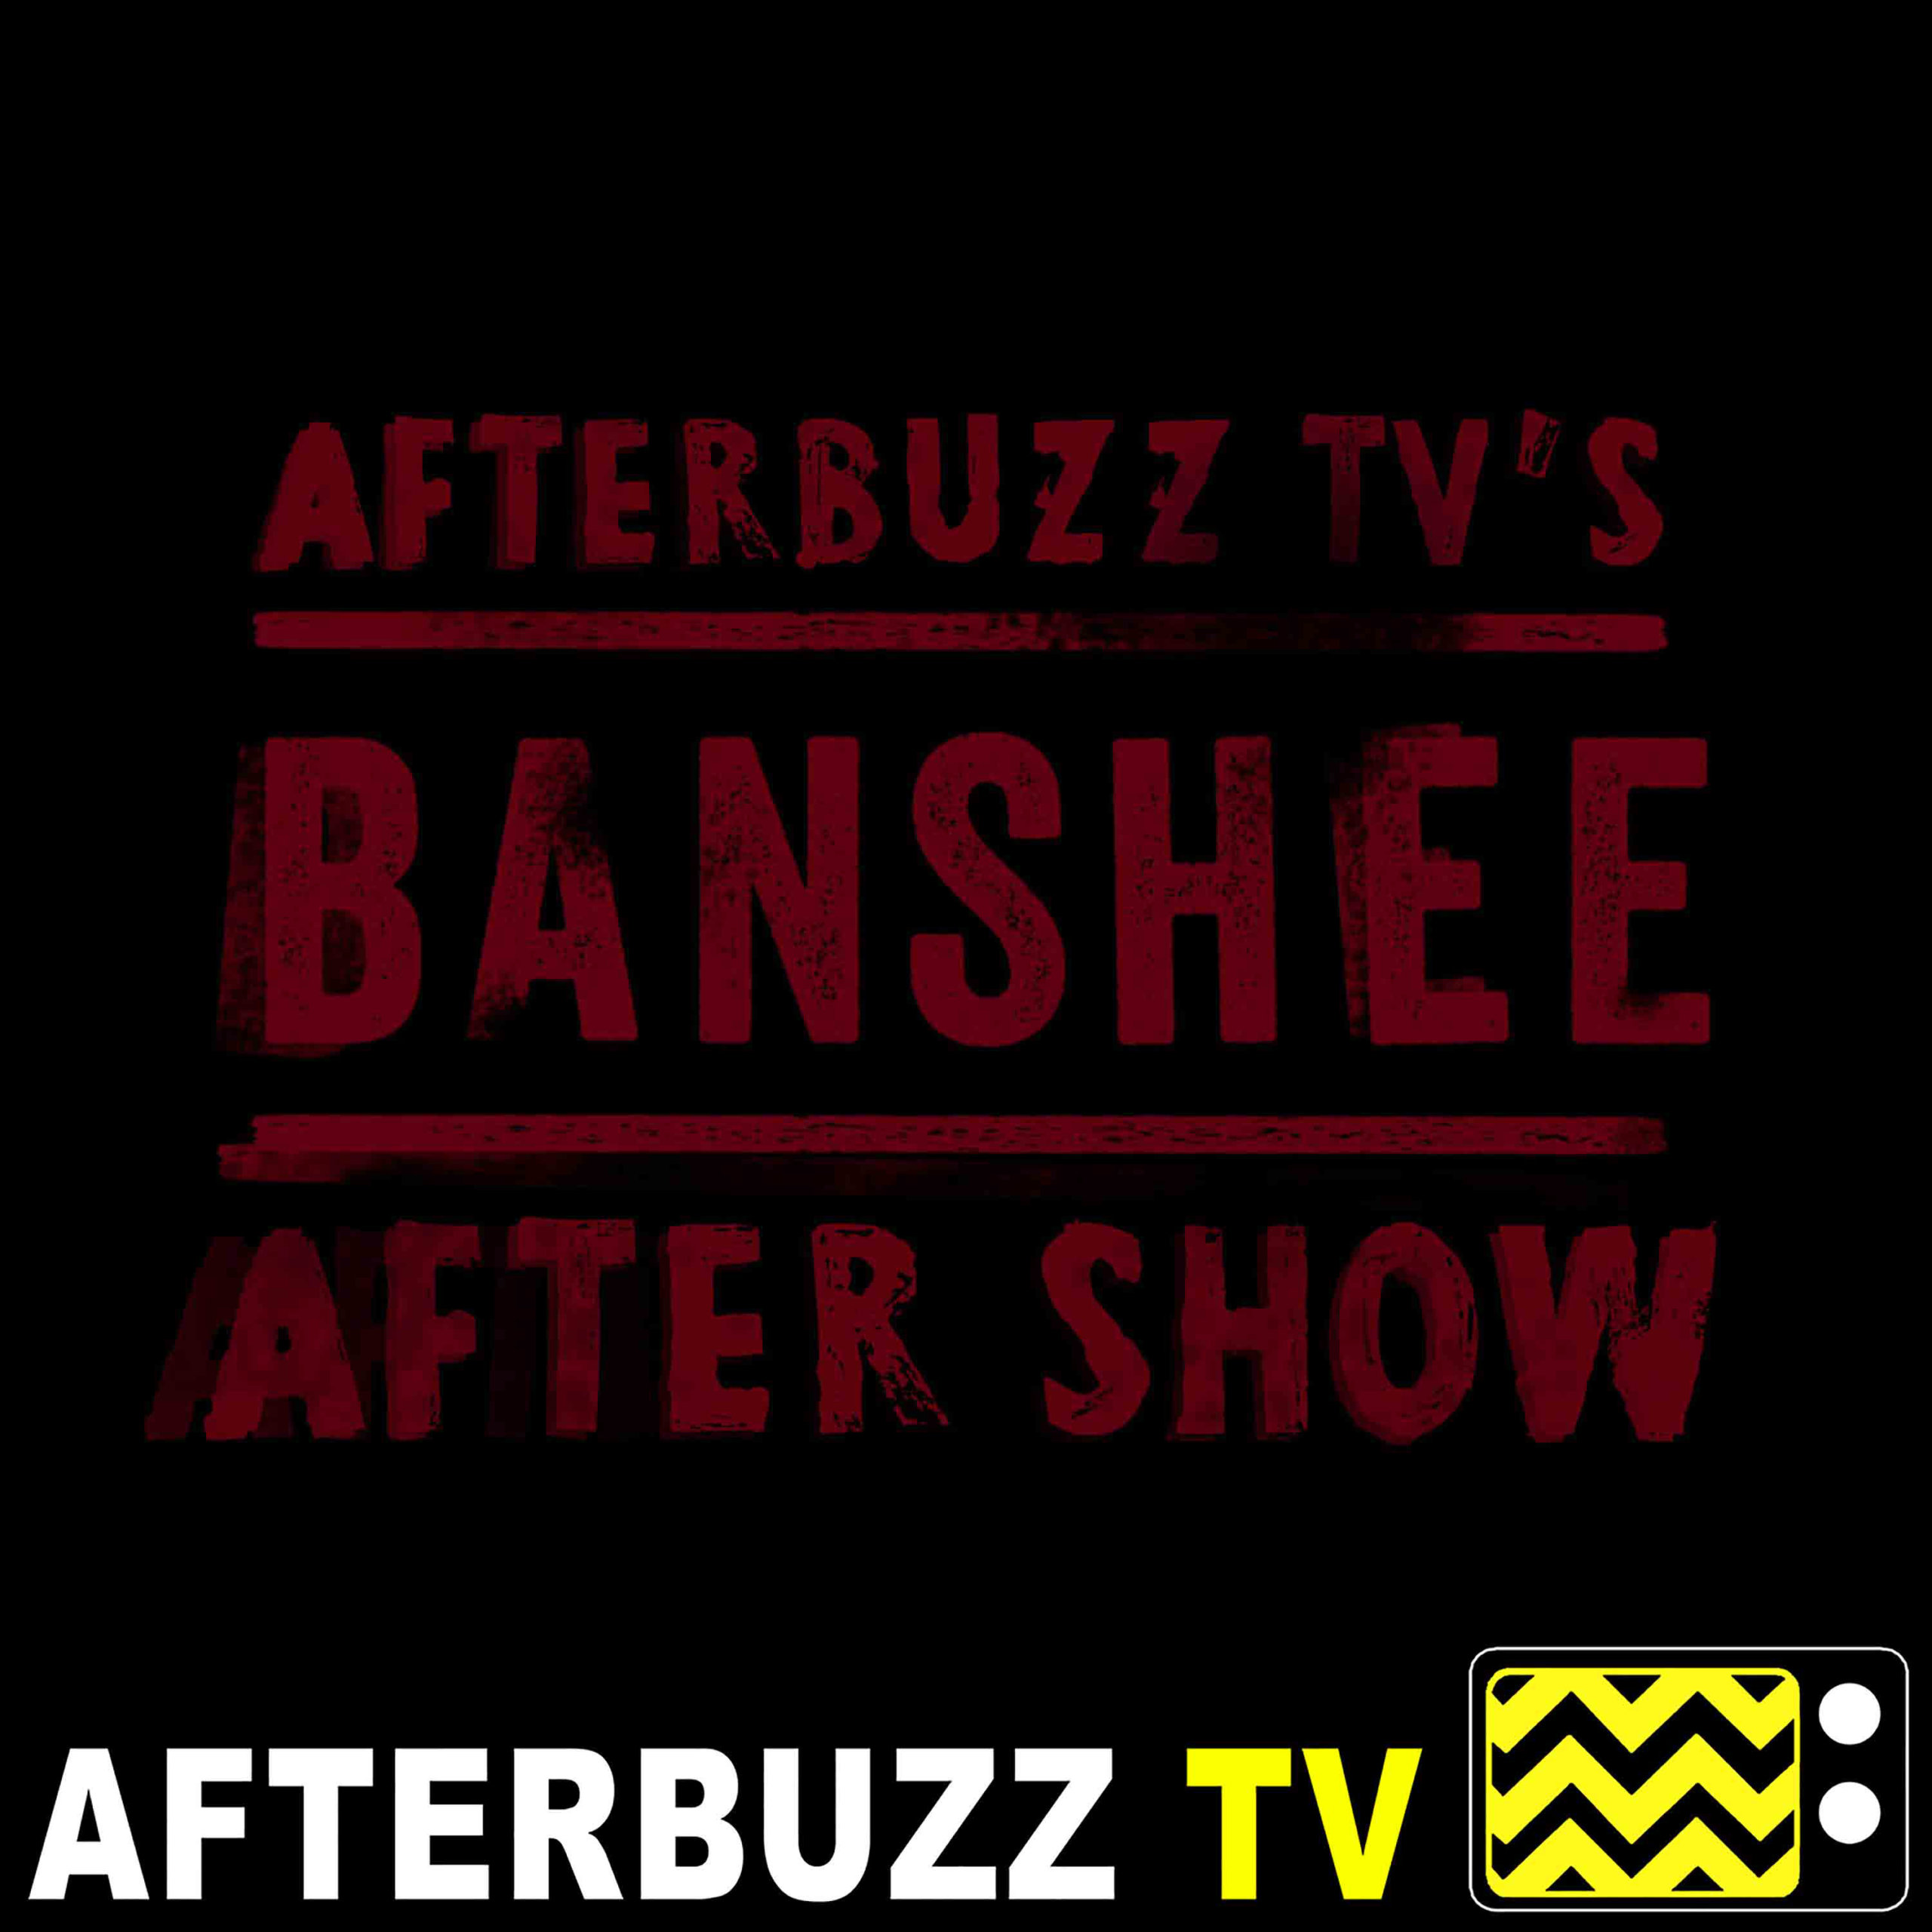 The Banshee Podcast